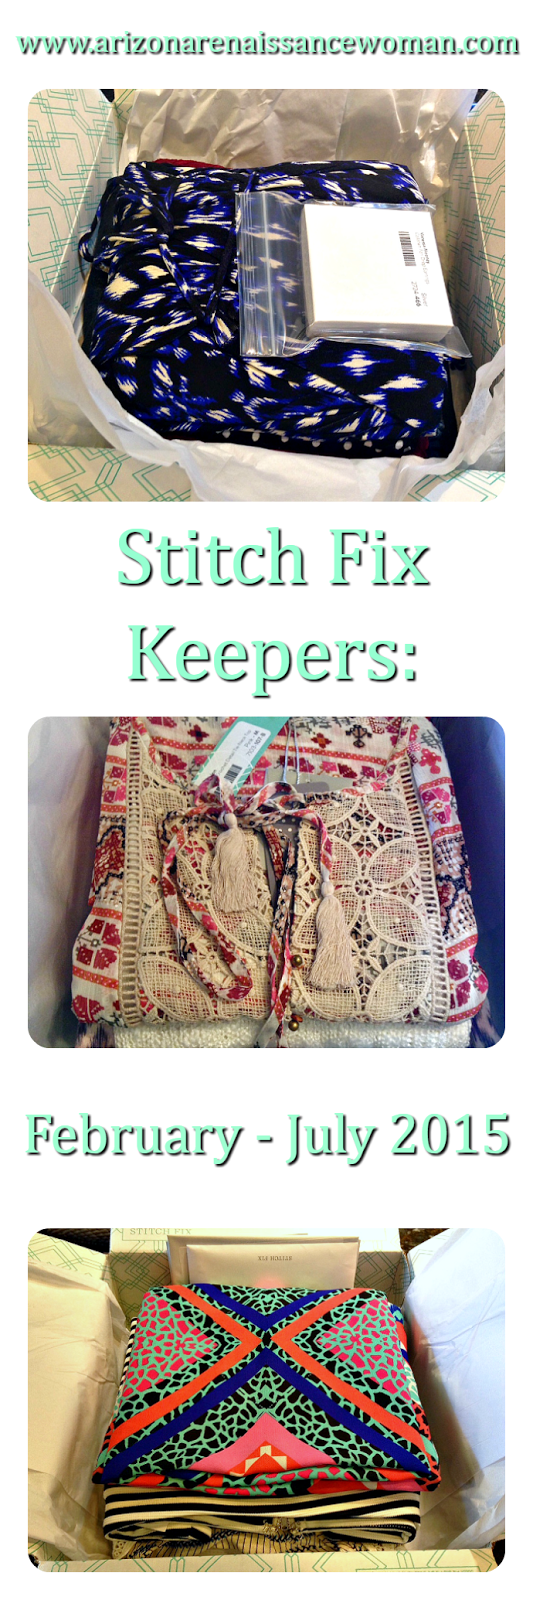 Stitch Fix Keepers: February - July 2015 Collage